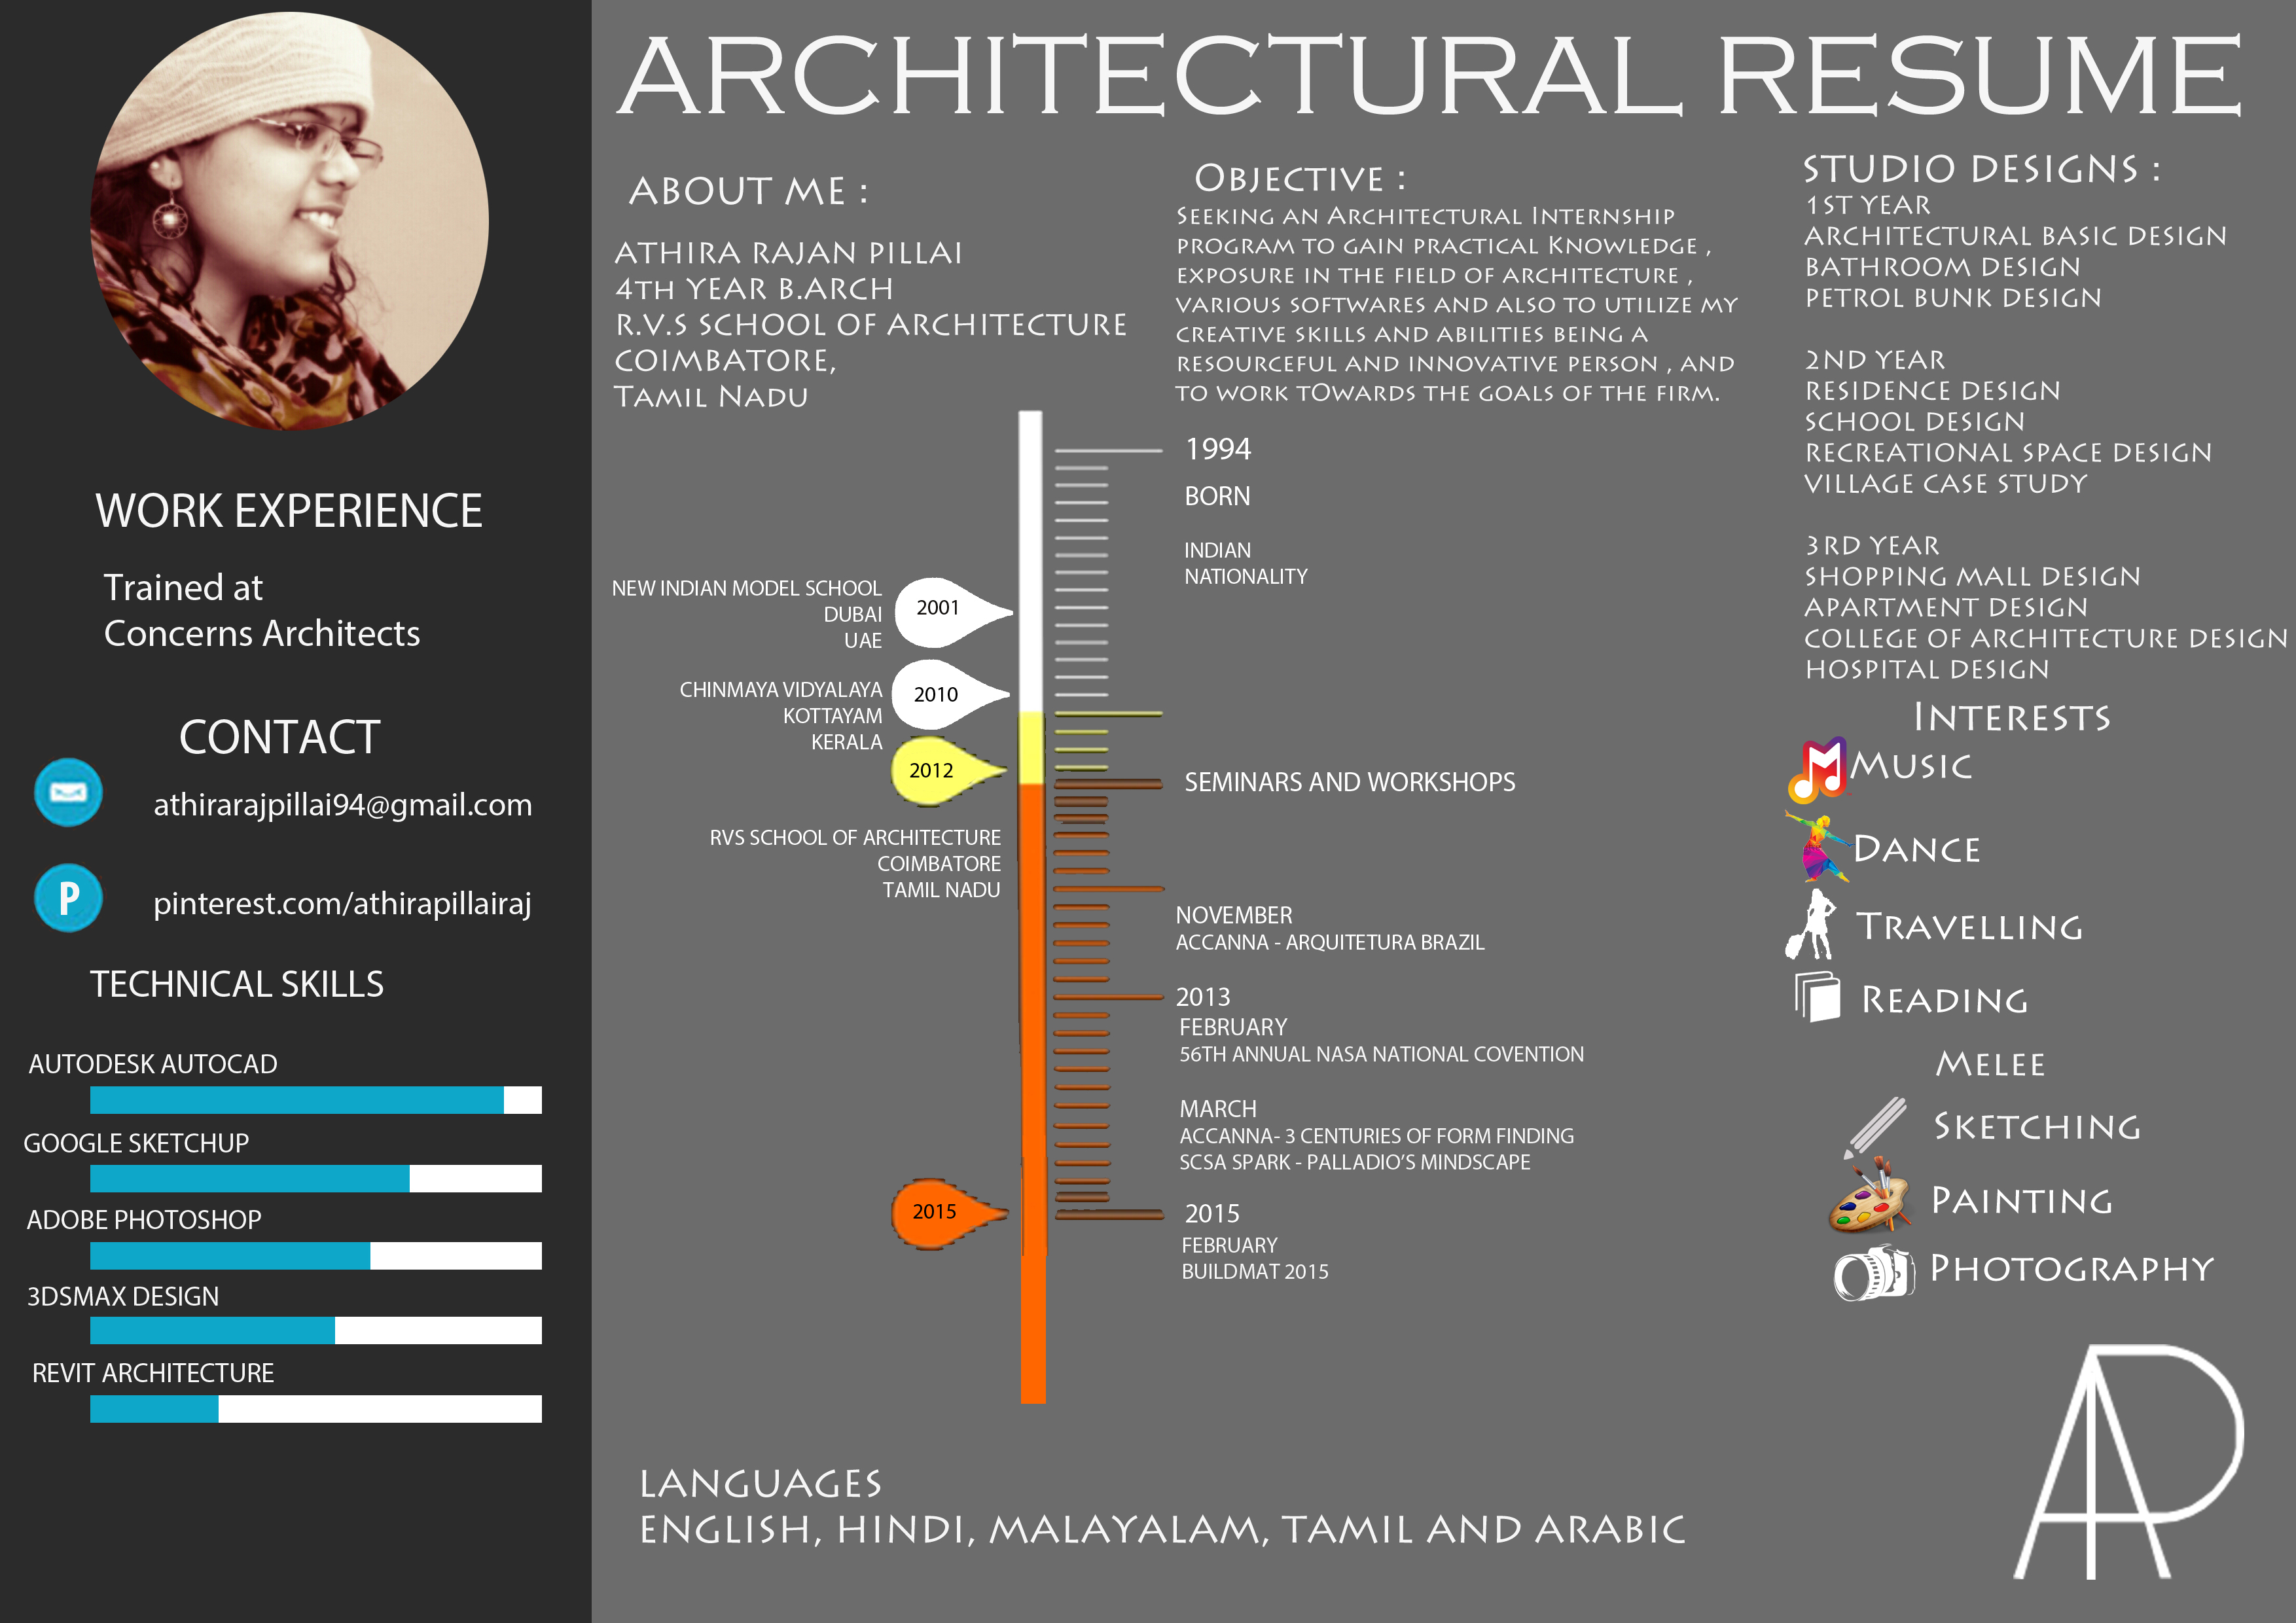 architectural resume on behance